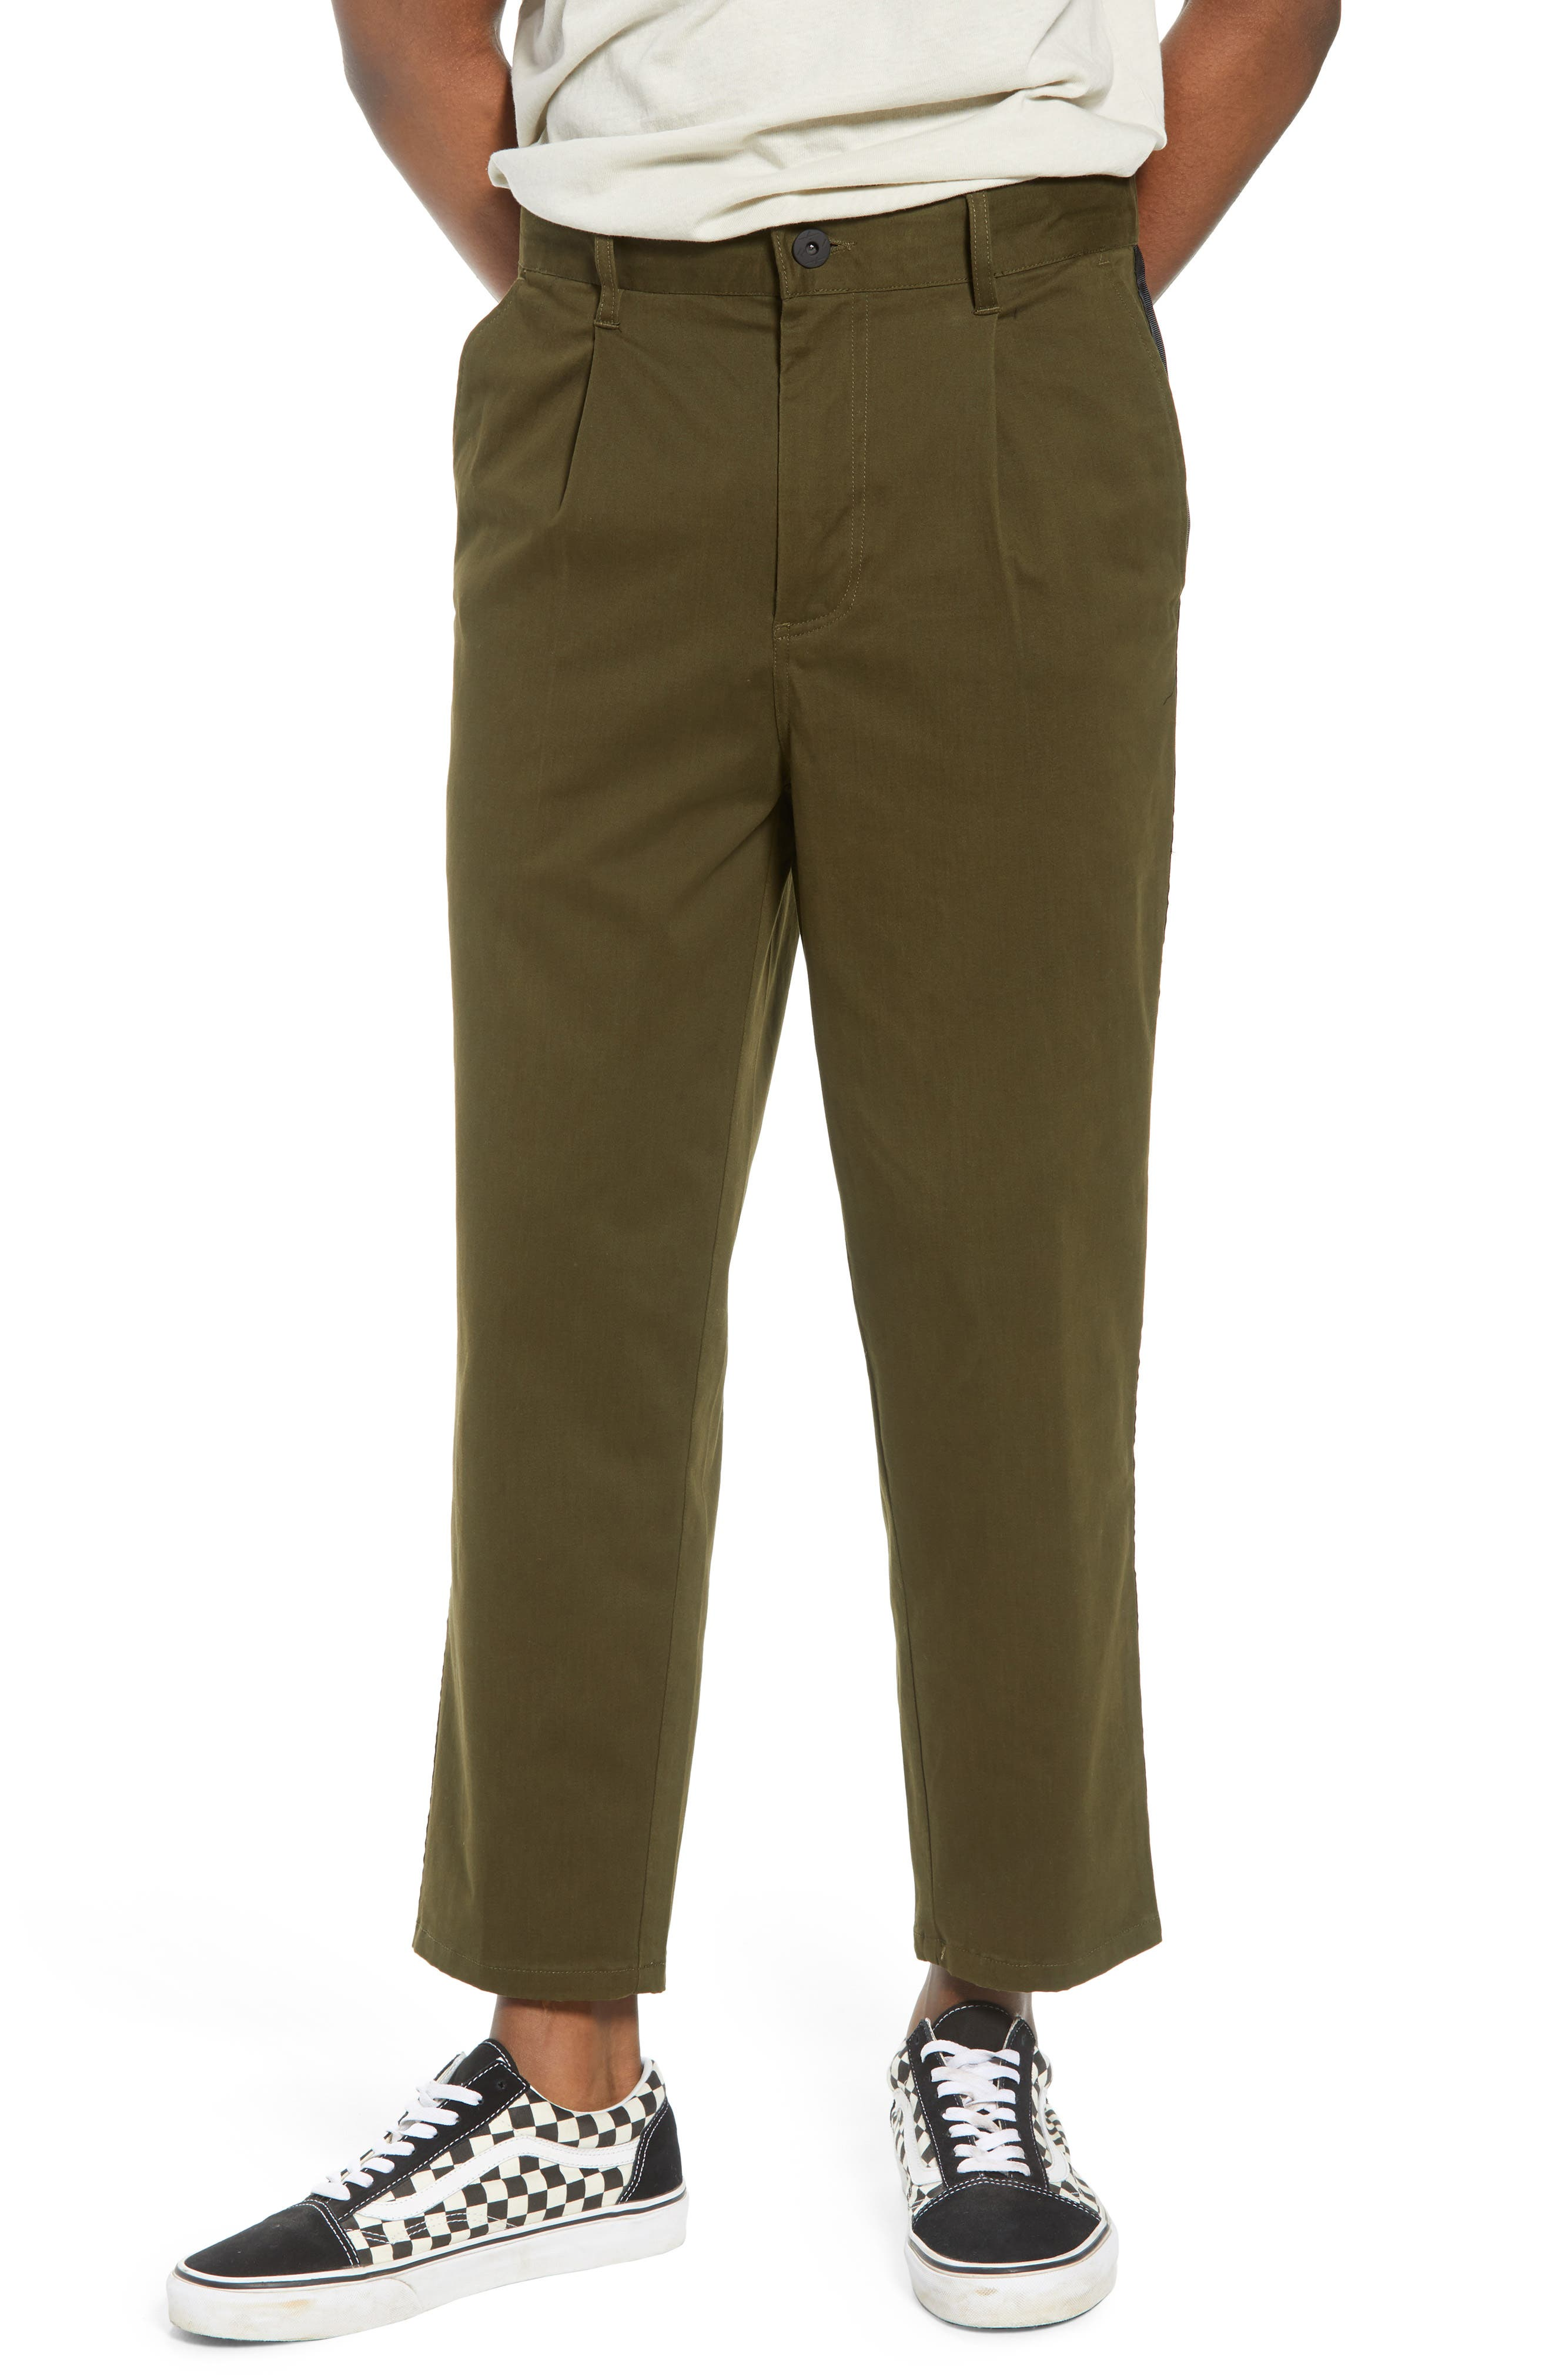 Lira Clothing Lincoln Relaxed Fit Pants